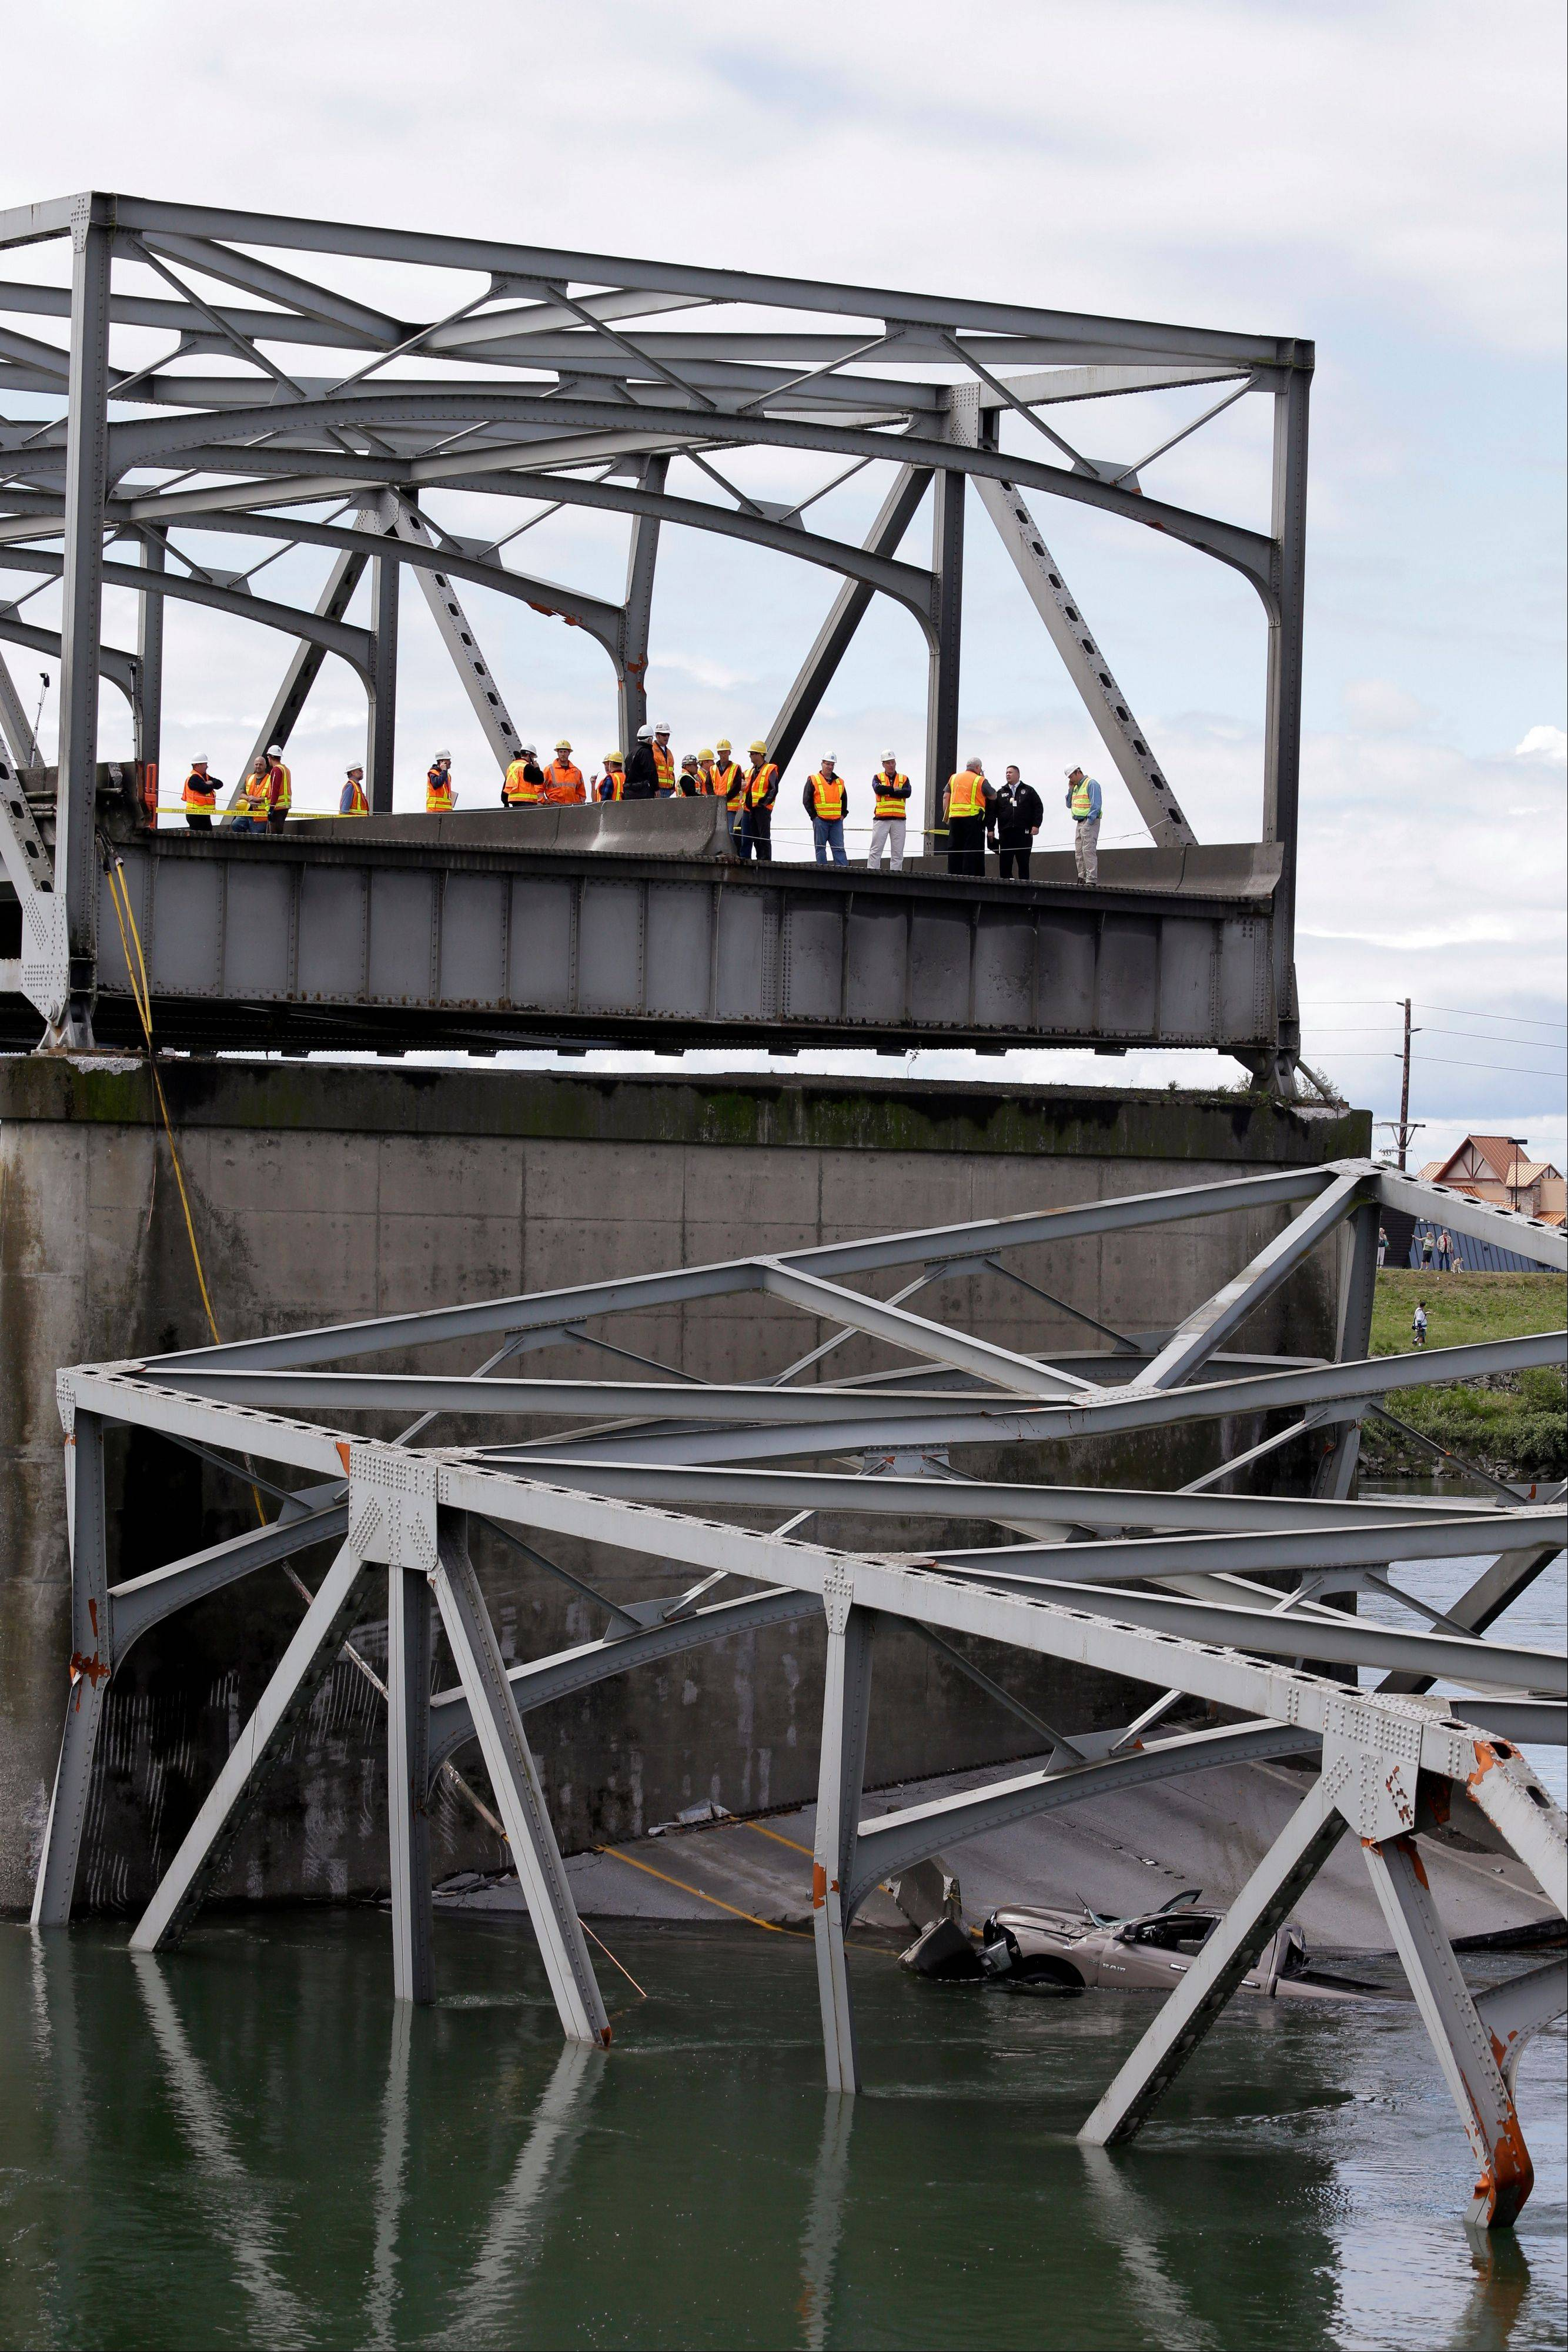 Workers look over a collapsed portion of the Interstate 5 bridge Friday at the Skagit River where a pickup truck can be seen in the water below. There is wide recognition at all levels of government that the failure to address aging infrastructure will likely undermine safety and hinder economic growth. But there is no consensus on how to pay for improvements.